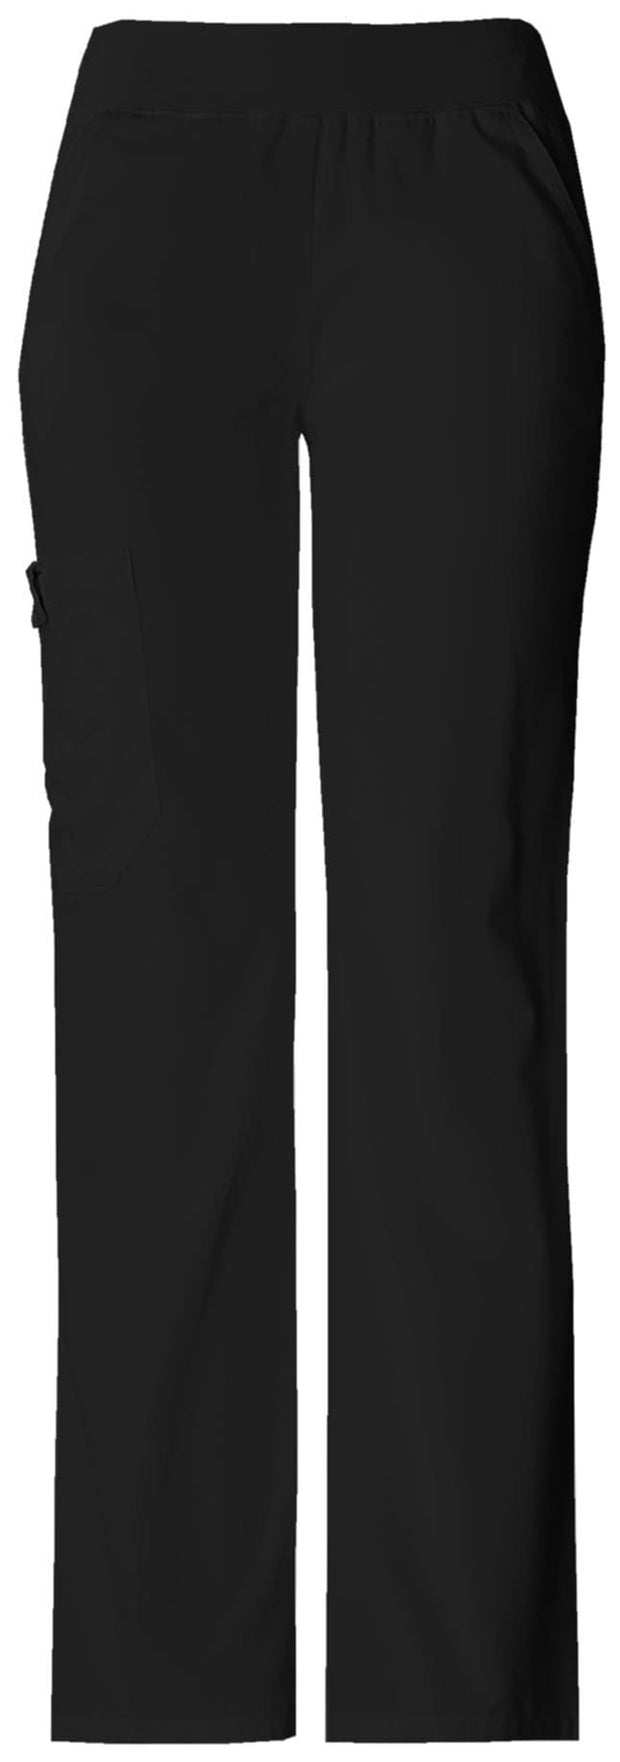 Cherokee Flexibles (Tonal) Women's Mid Rise Knit Waist Pull-On Pant - 2085T  Tall - ScrubHaven